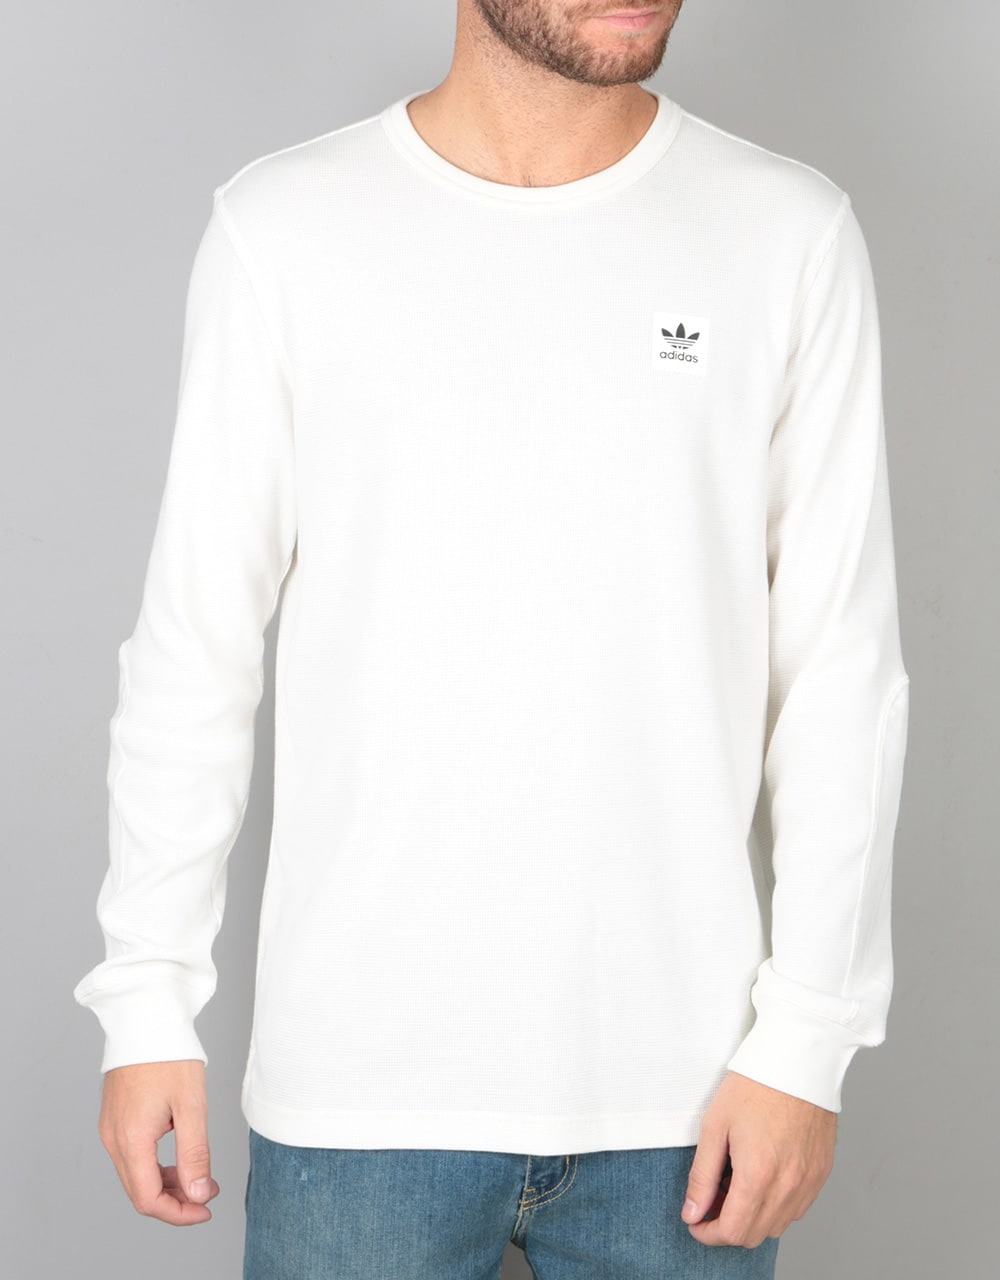 Adidas Thermal L S T Shirt Off White Skate T Shirts